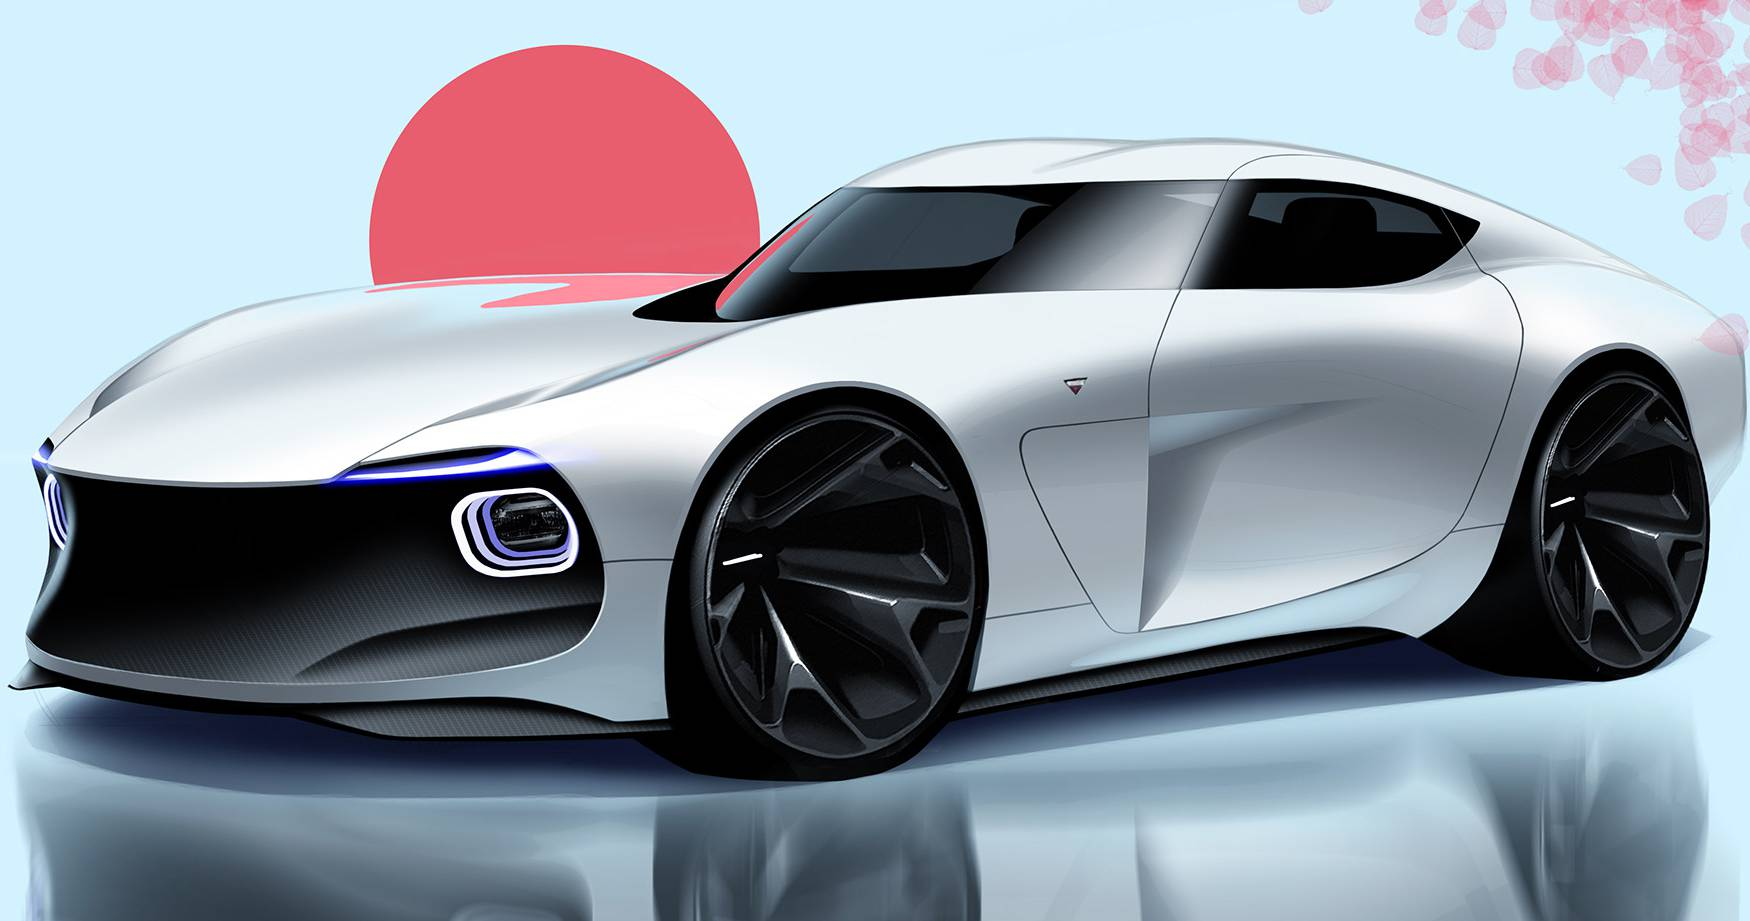 What If Toyota Reinvented The 2000gt Supercar For The 21st